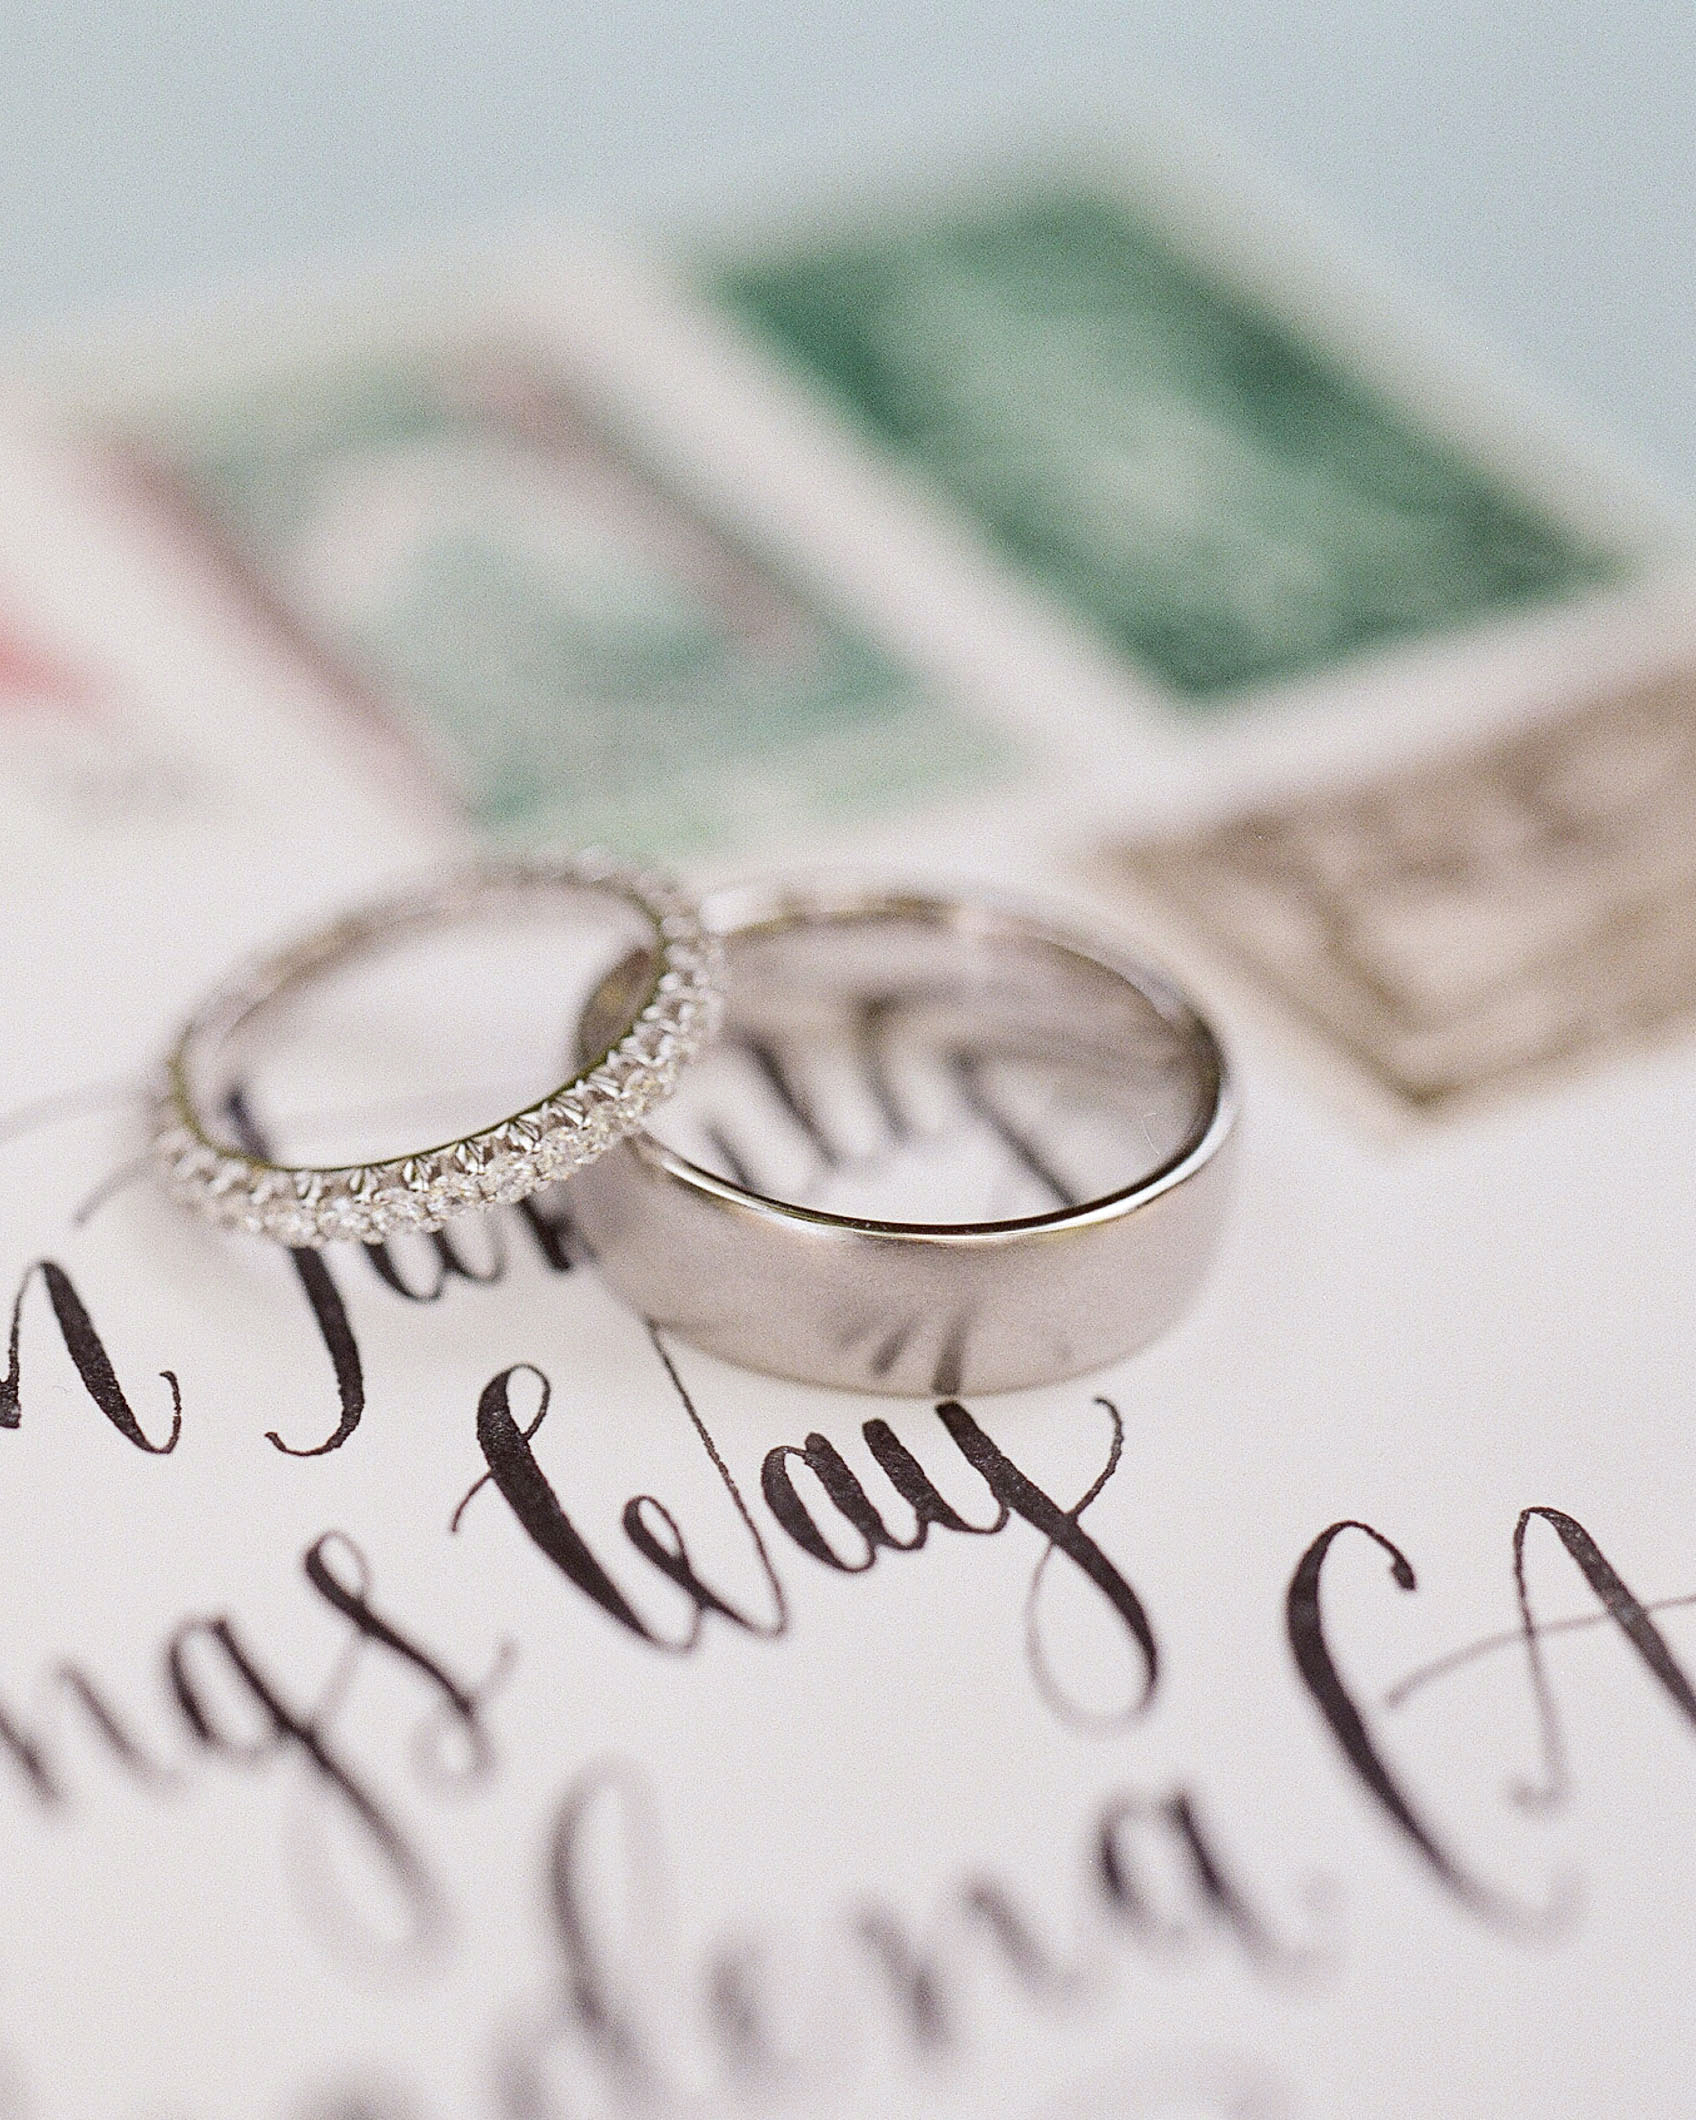 Everything You Need to Know About Having Your Wedding Band Engraved